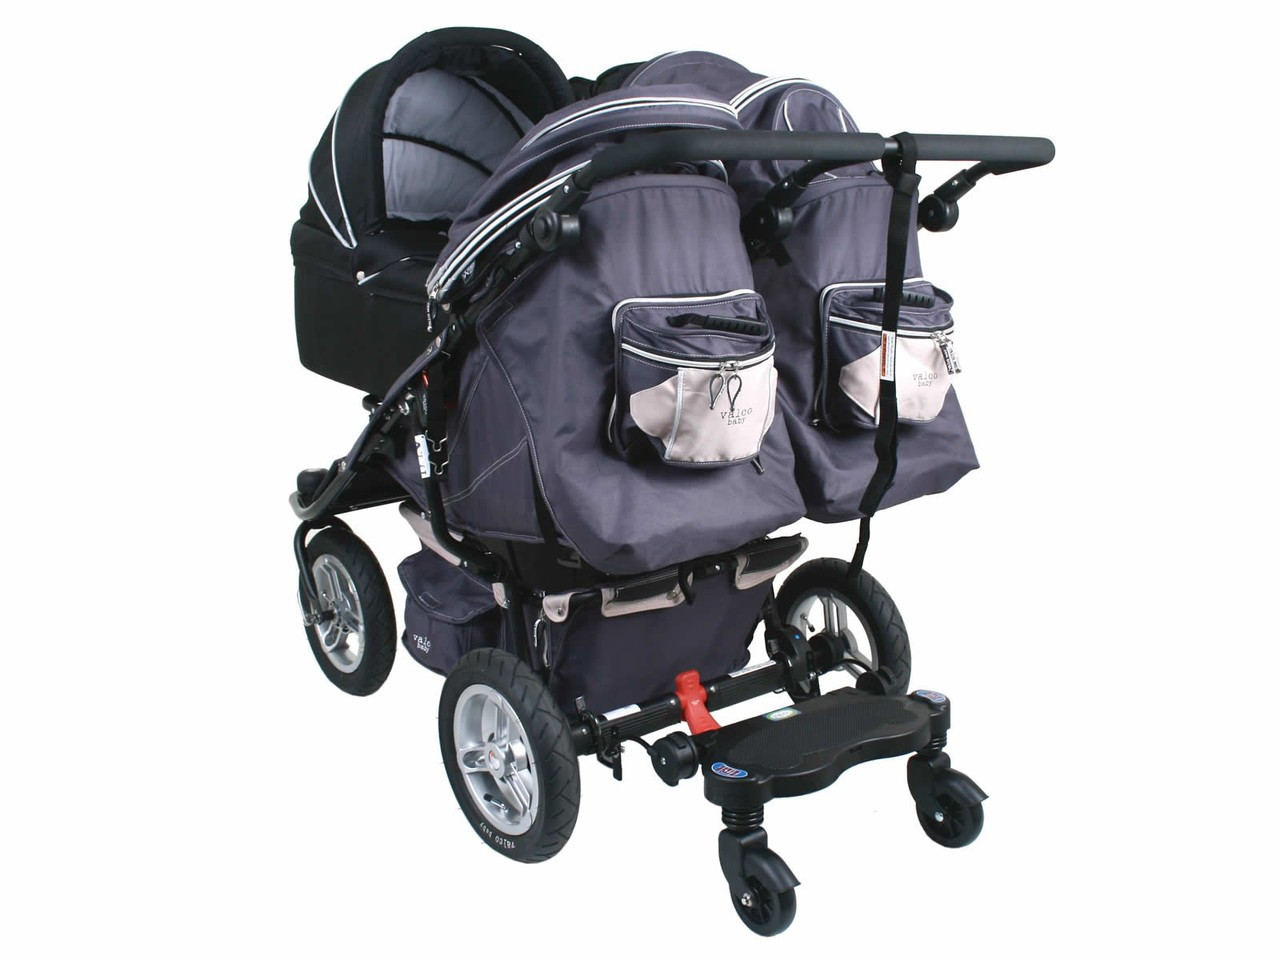 Valco Baby Hitch Hiker CB (Concealed Brakes)